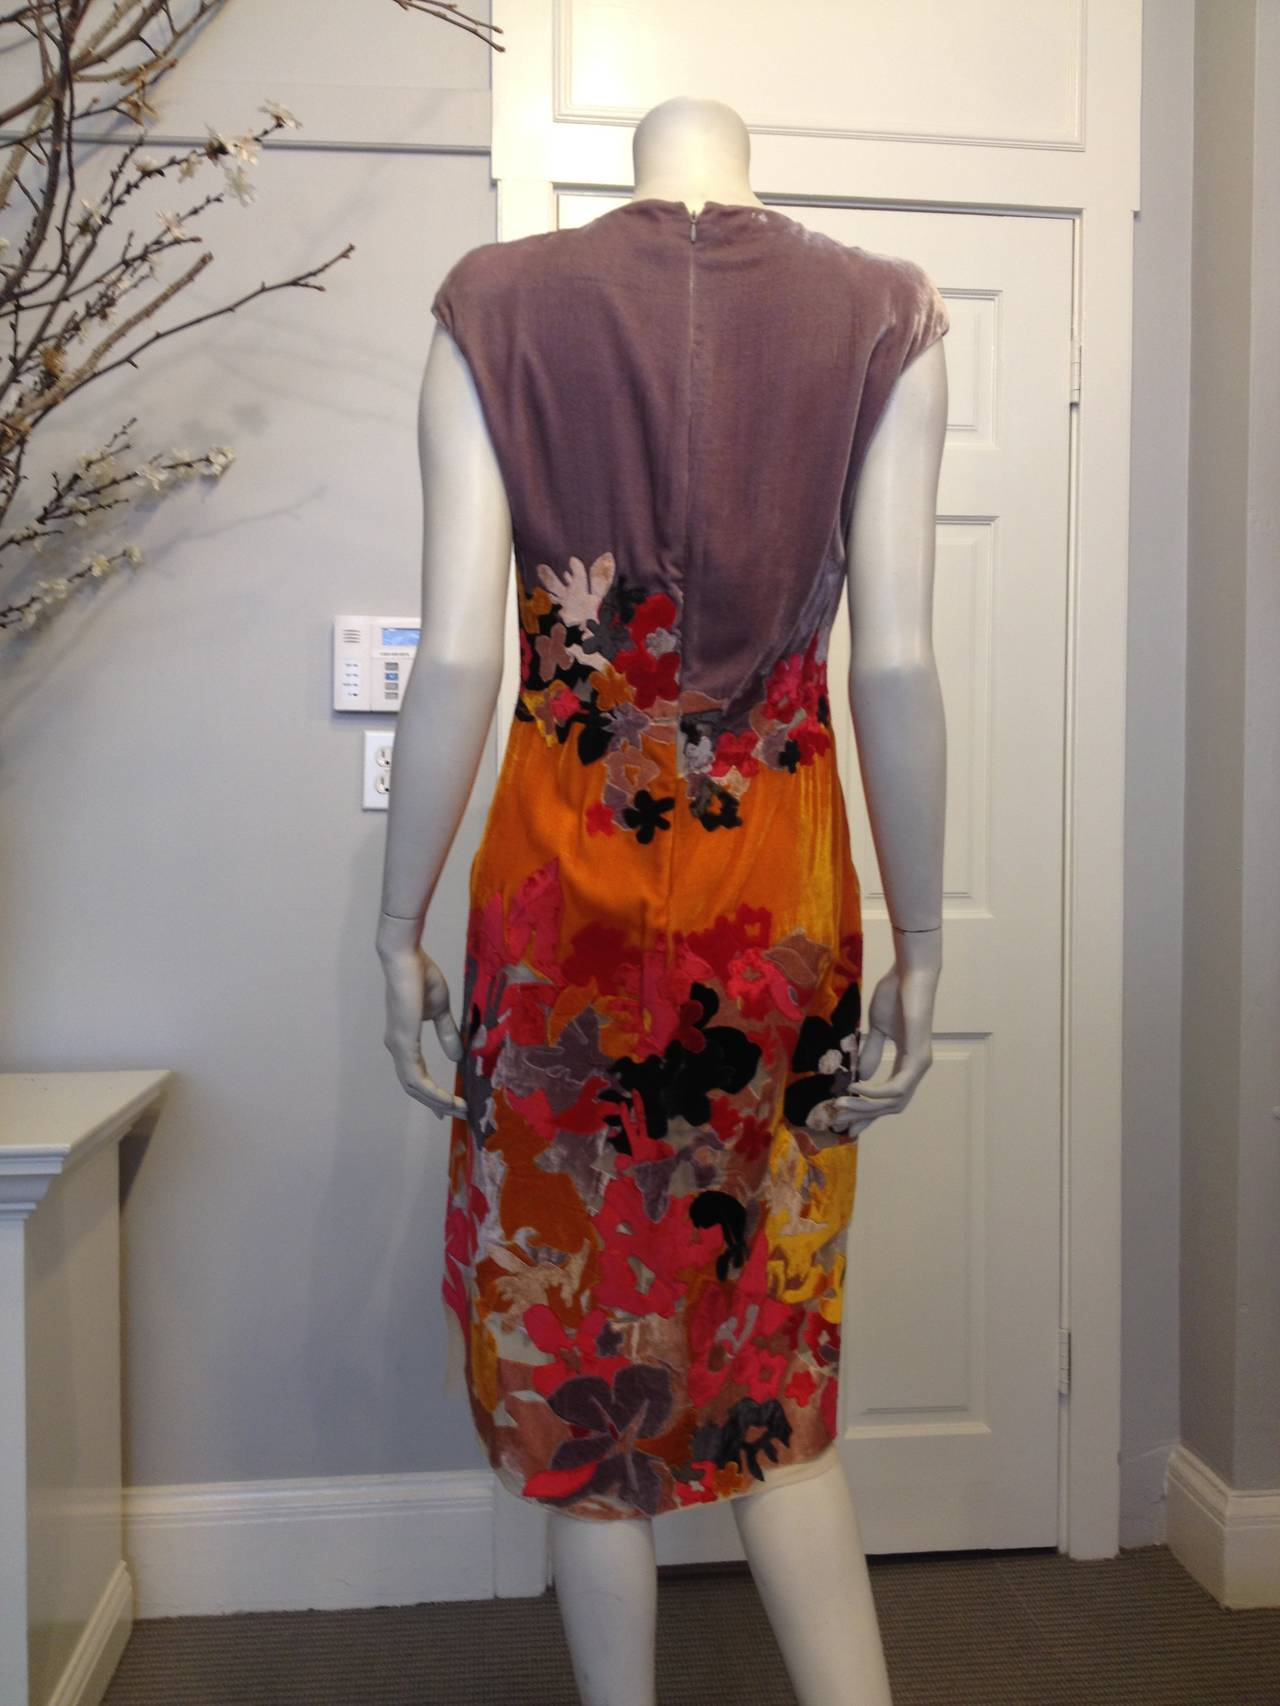 Bottega Veneta Lavender and Orange Cut Velvet Floral Dress 3